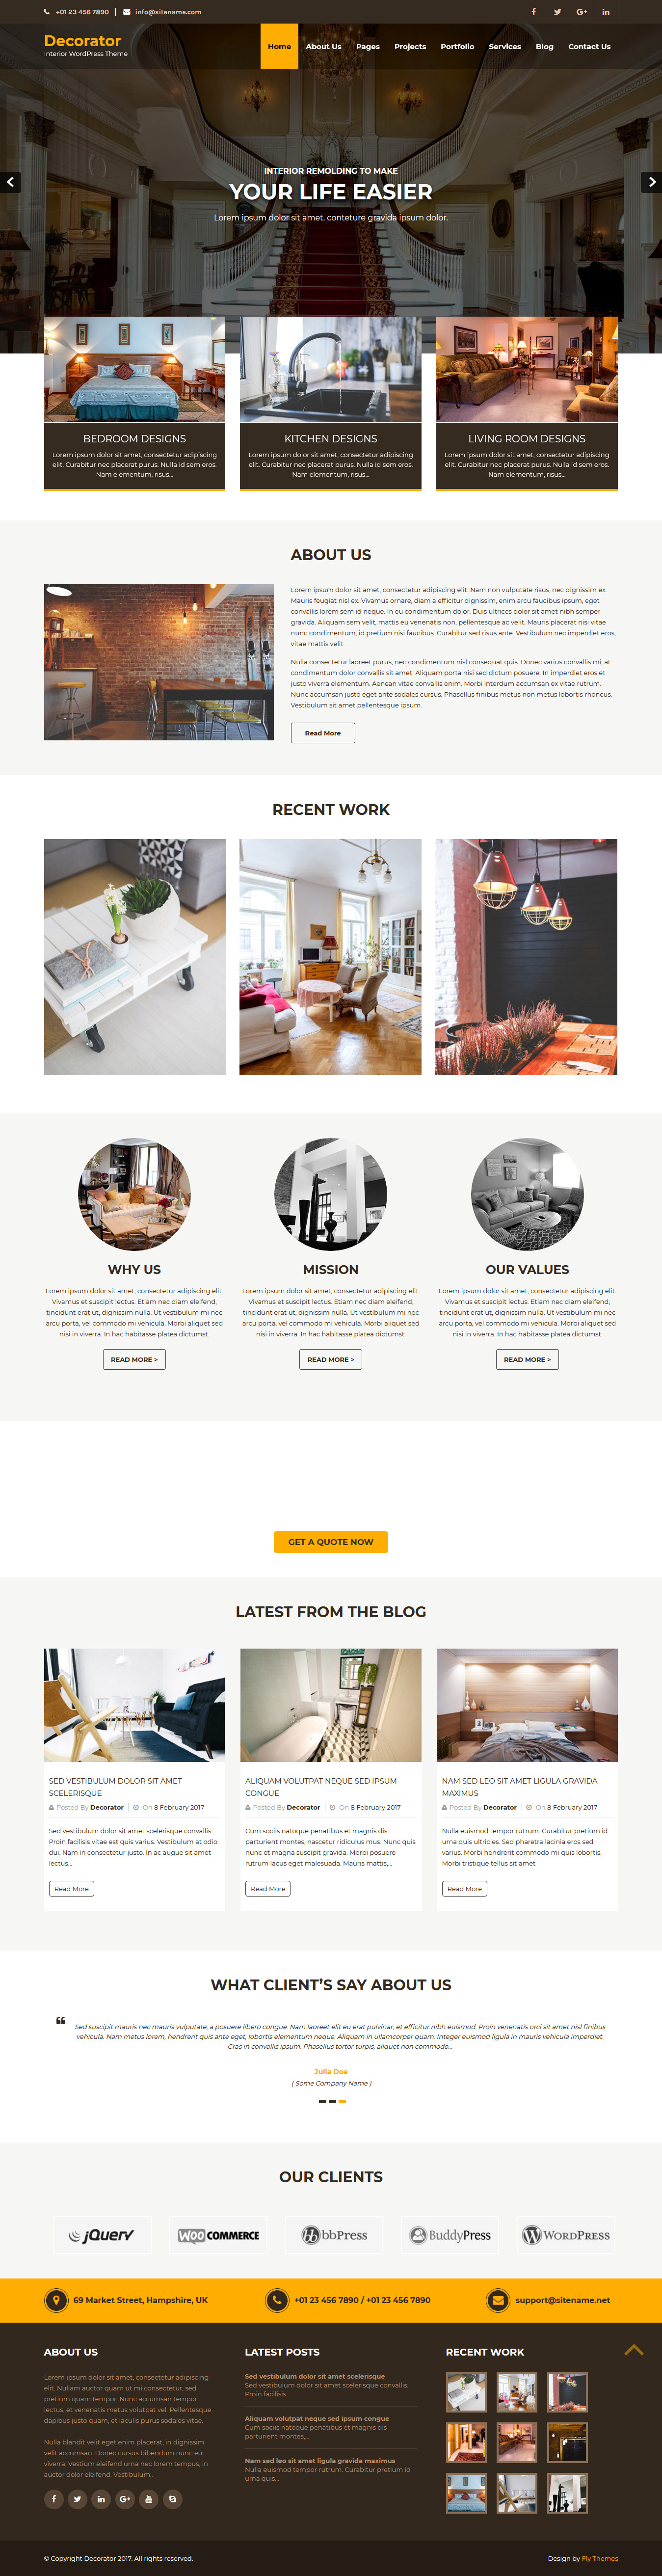 decorator best free architecture wordpress theme - 10+ Best Free Architecture WordPress Themes